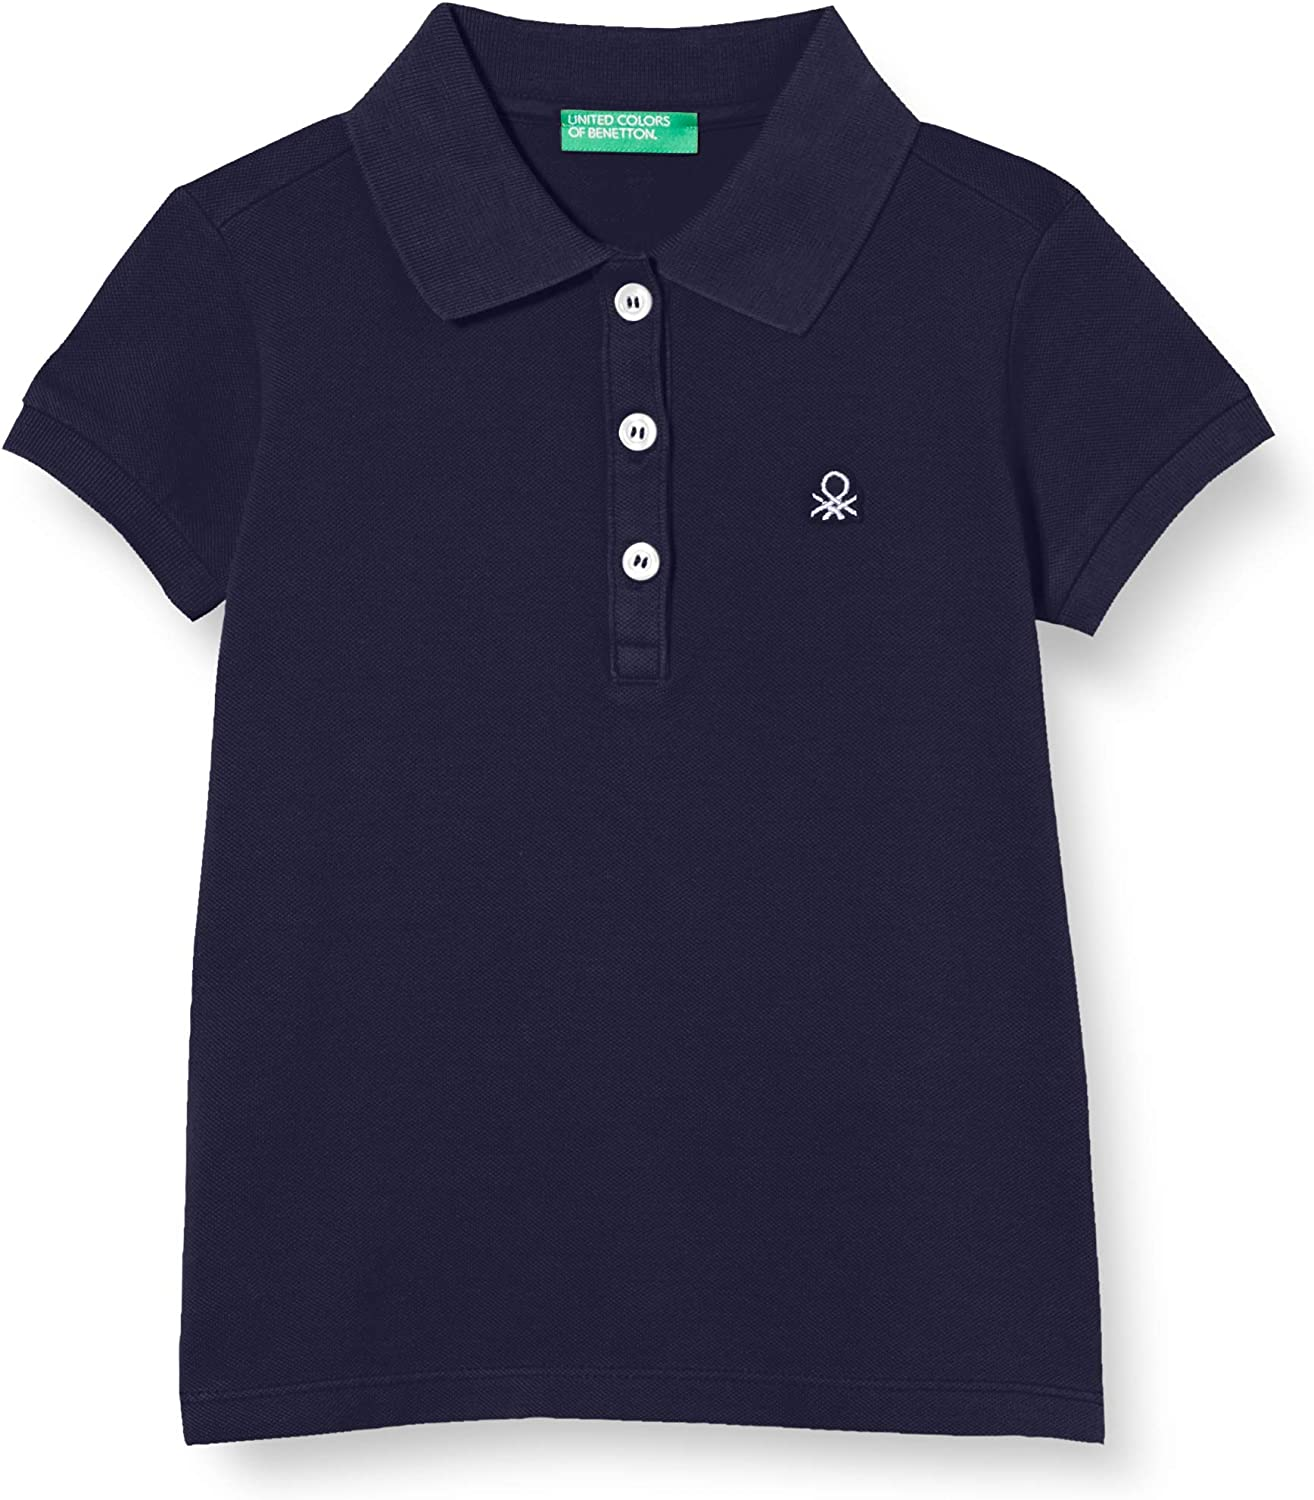 United Colors of Benetton Girls Maglia Polo M//M Shirt